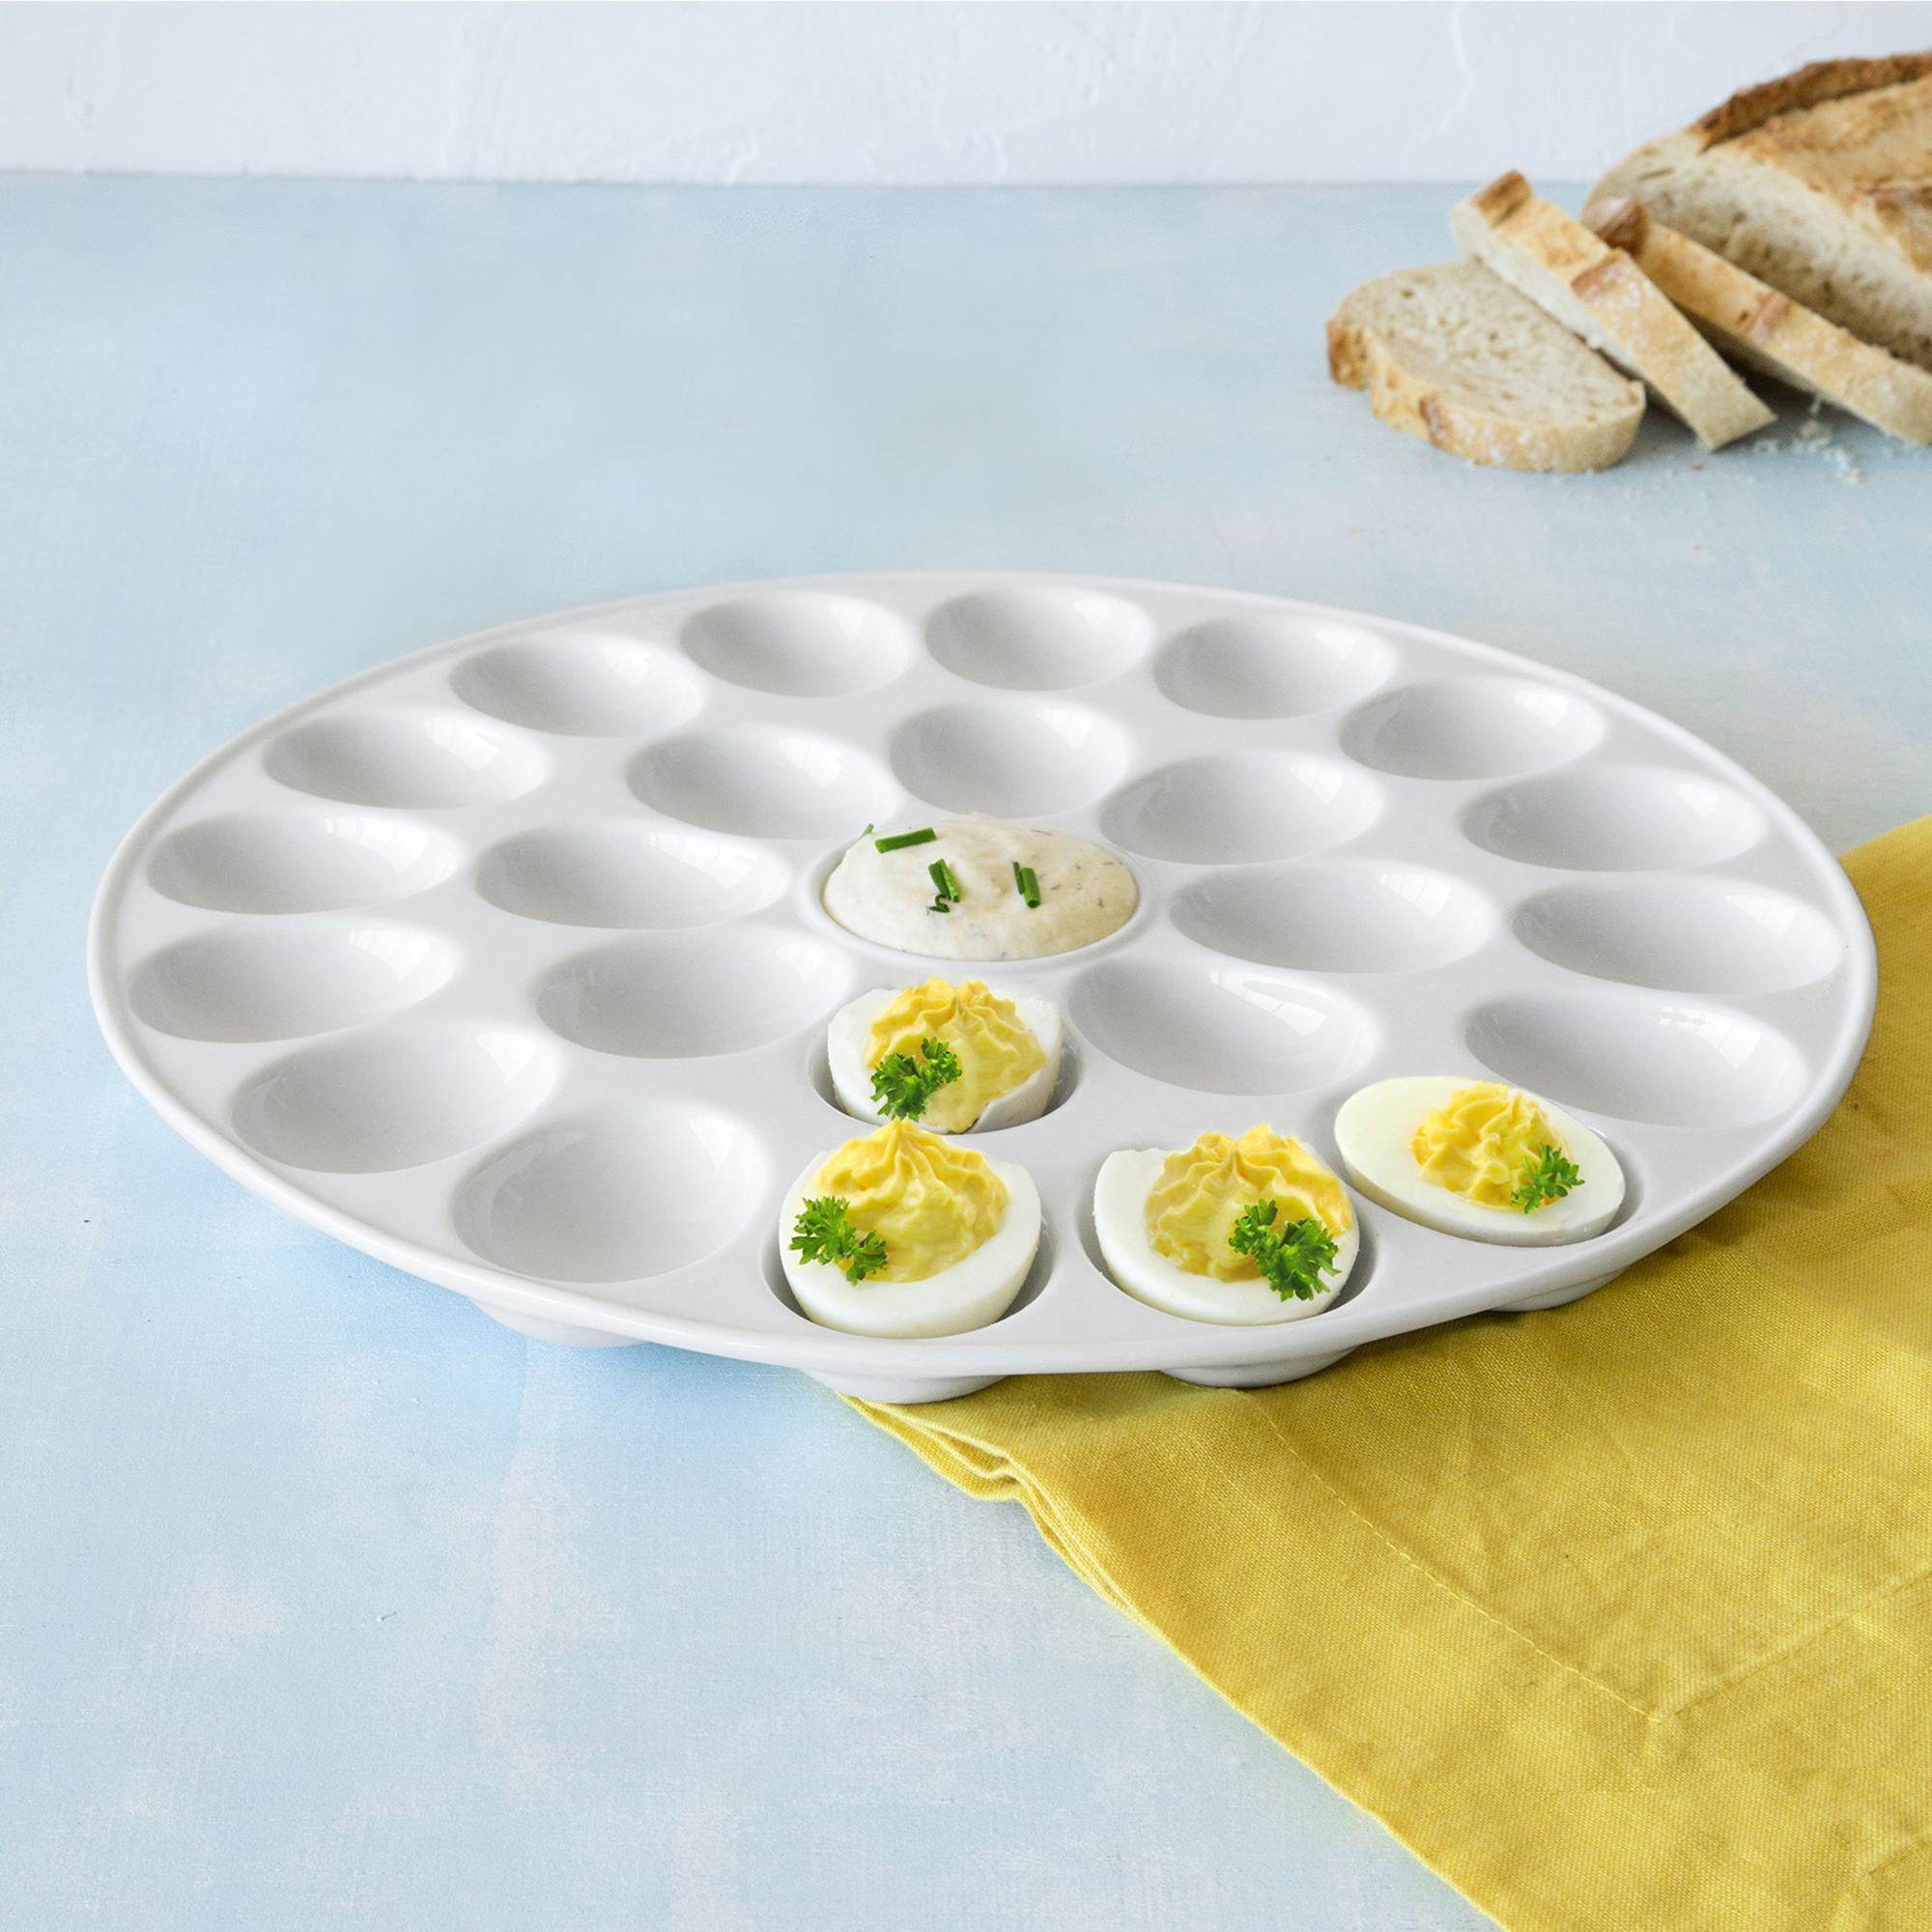 Better Homes & Garden Porcelain Egg Platter, White by Better Homes and Gardens